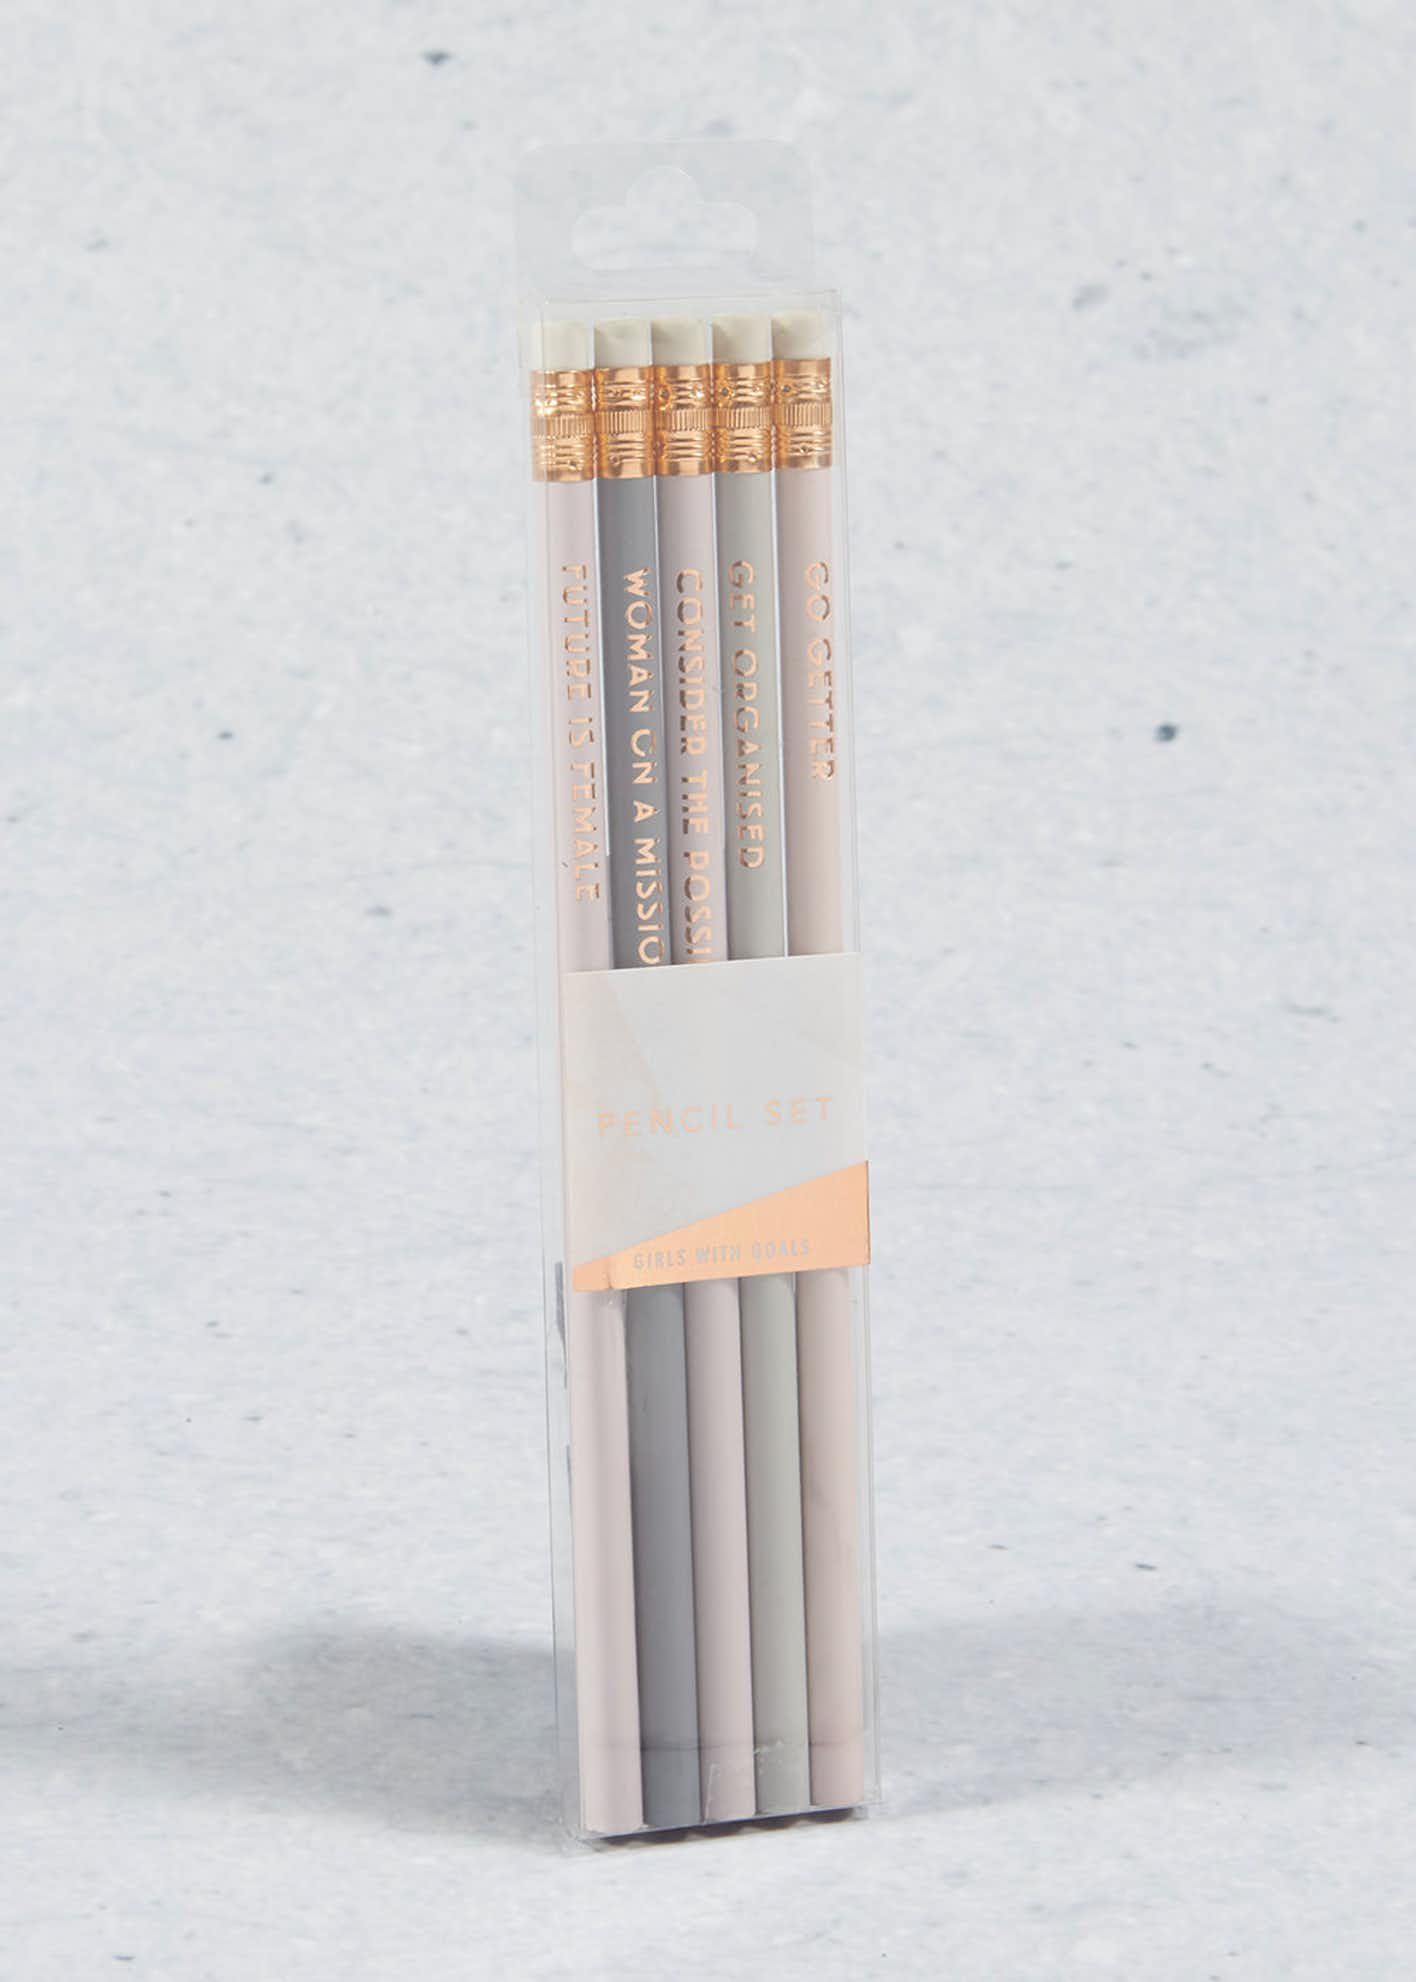 Set of 5 Slogan Pencils (20cm x 4cm x 1cm)